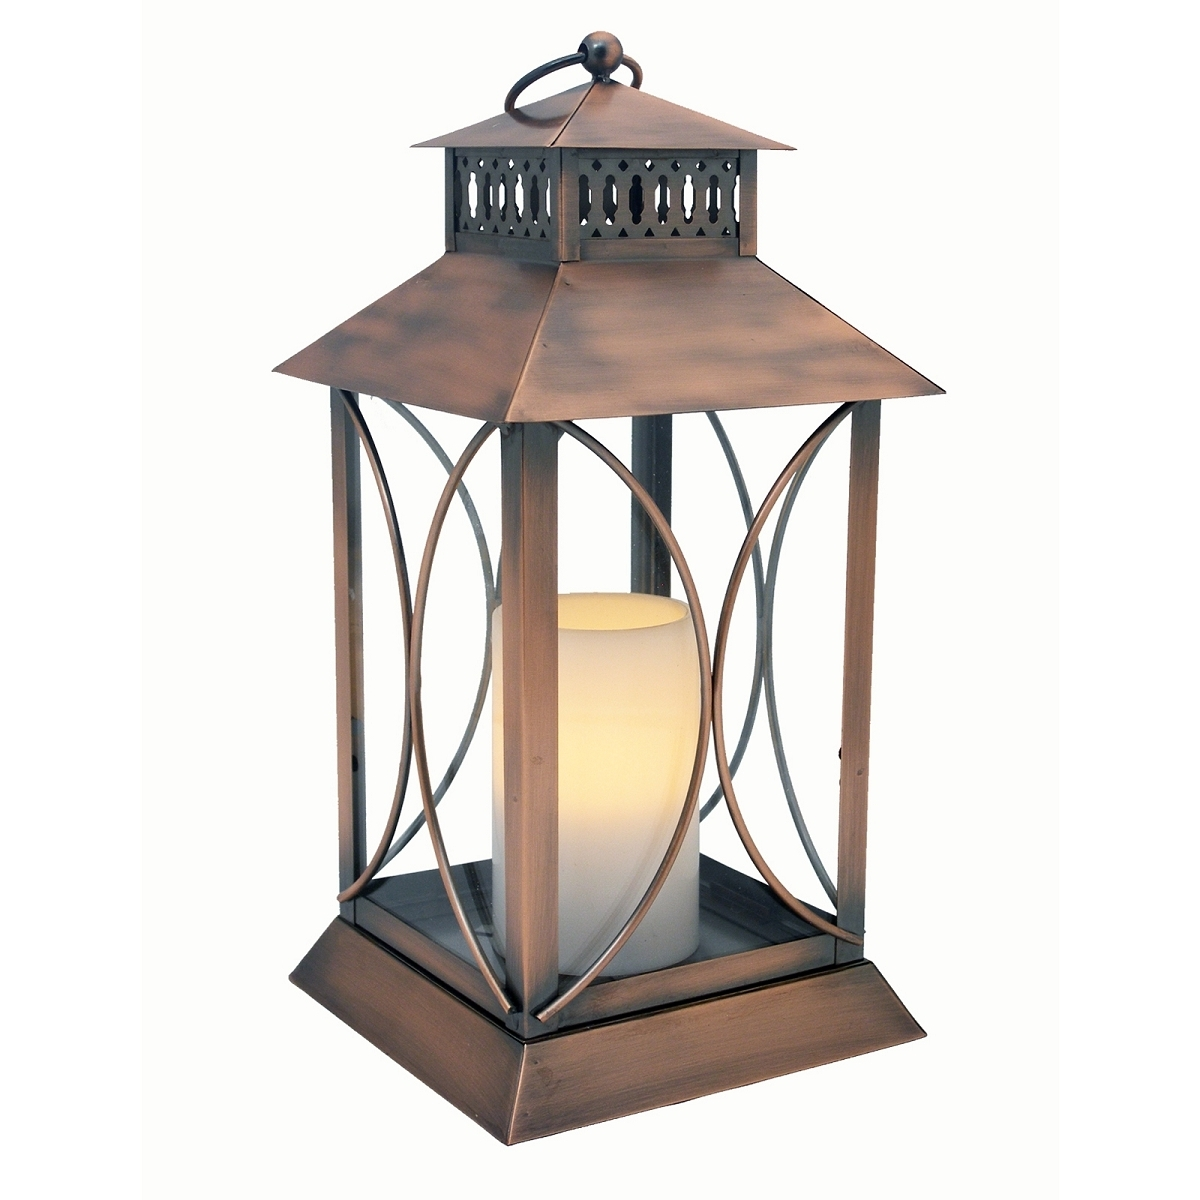 Outdoor Timer Lanterns Intended For Well Liked Neuporte Flameless Candle Lantern With Timer Indoor Outdoor (View 4 of 20)